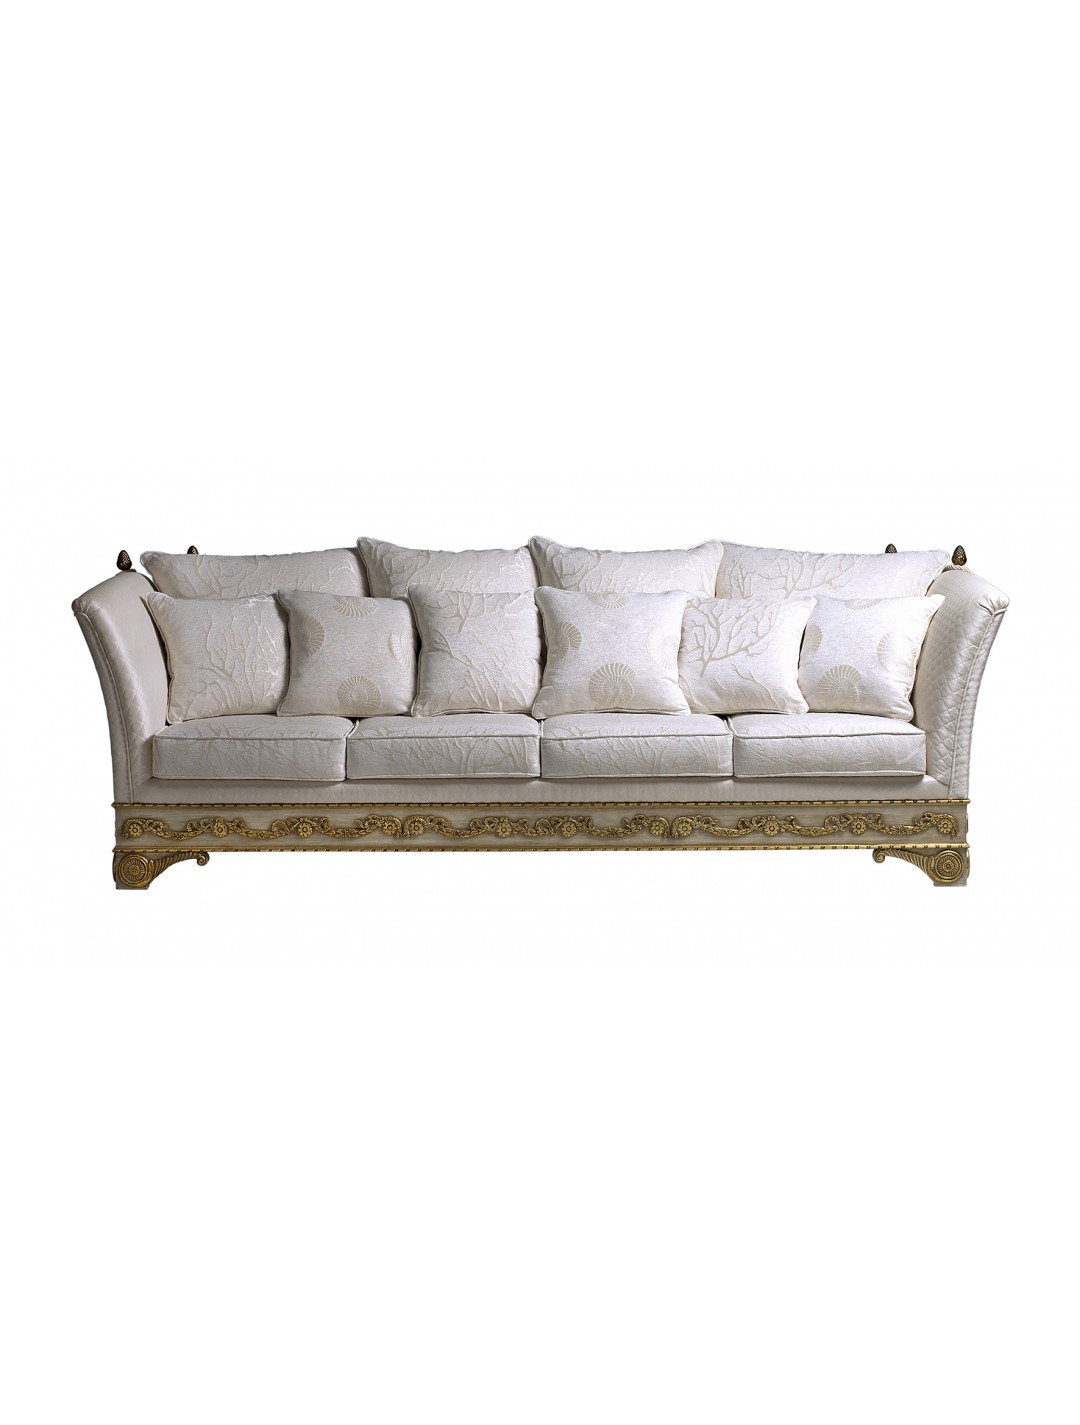 LORENA 4-SEATER SOFA, SIX 50*50 CUSHIONS INCLUDED, C.O.M.